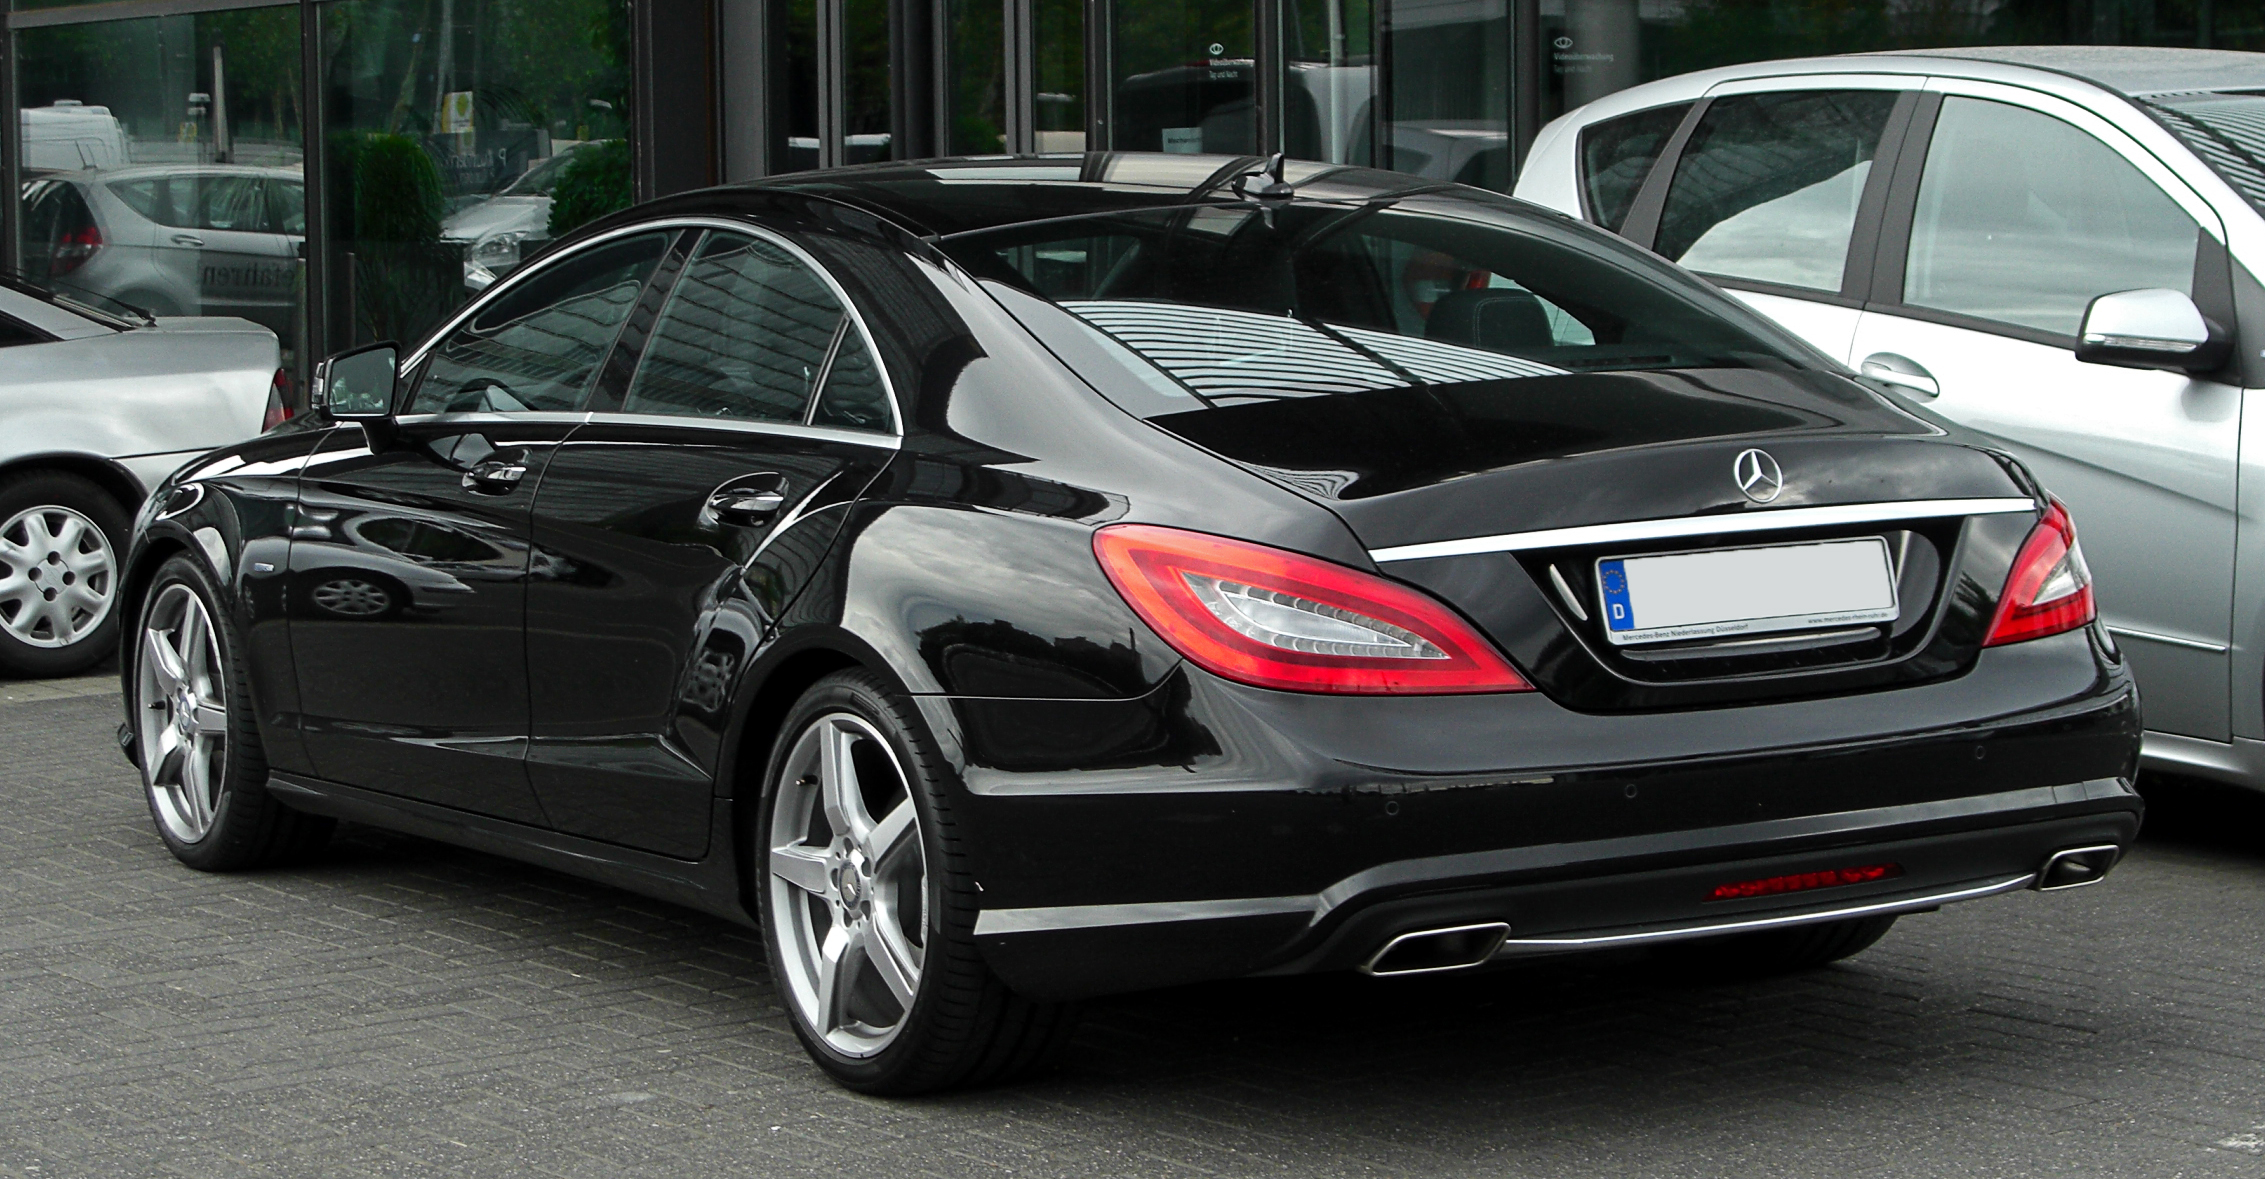 mercedes benz cls 500 technical details history photos. Black Bedroom Furniture Sets. Home Design Ideas